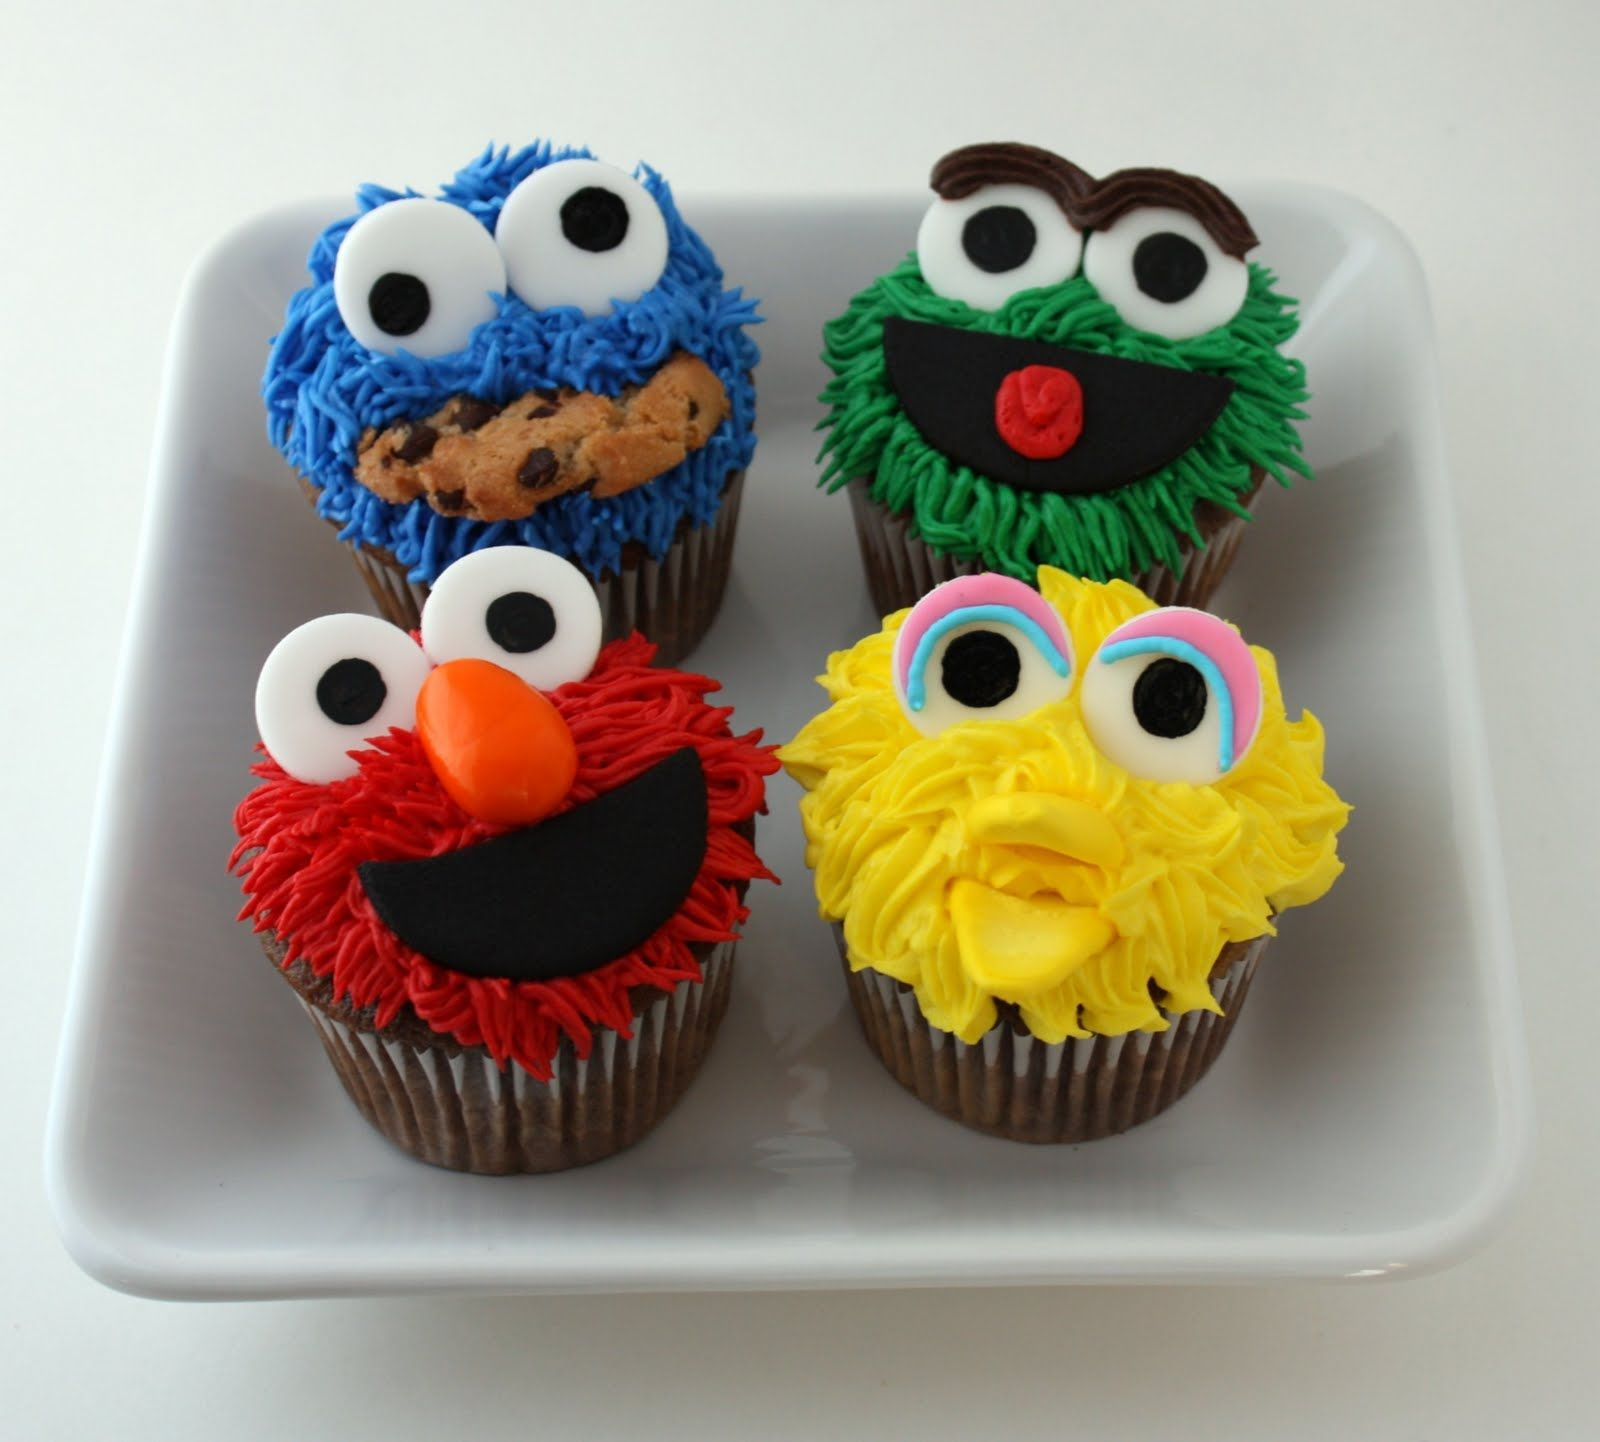 Cookies Kuchen Ohne Backen Elmo Cupcakes Gotta Make These For All The Kiddies In My